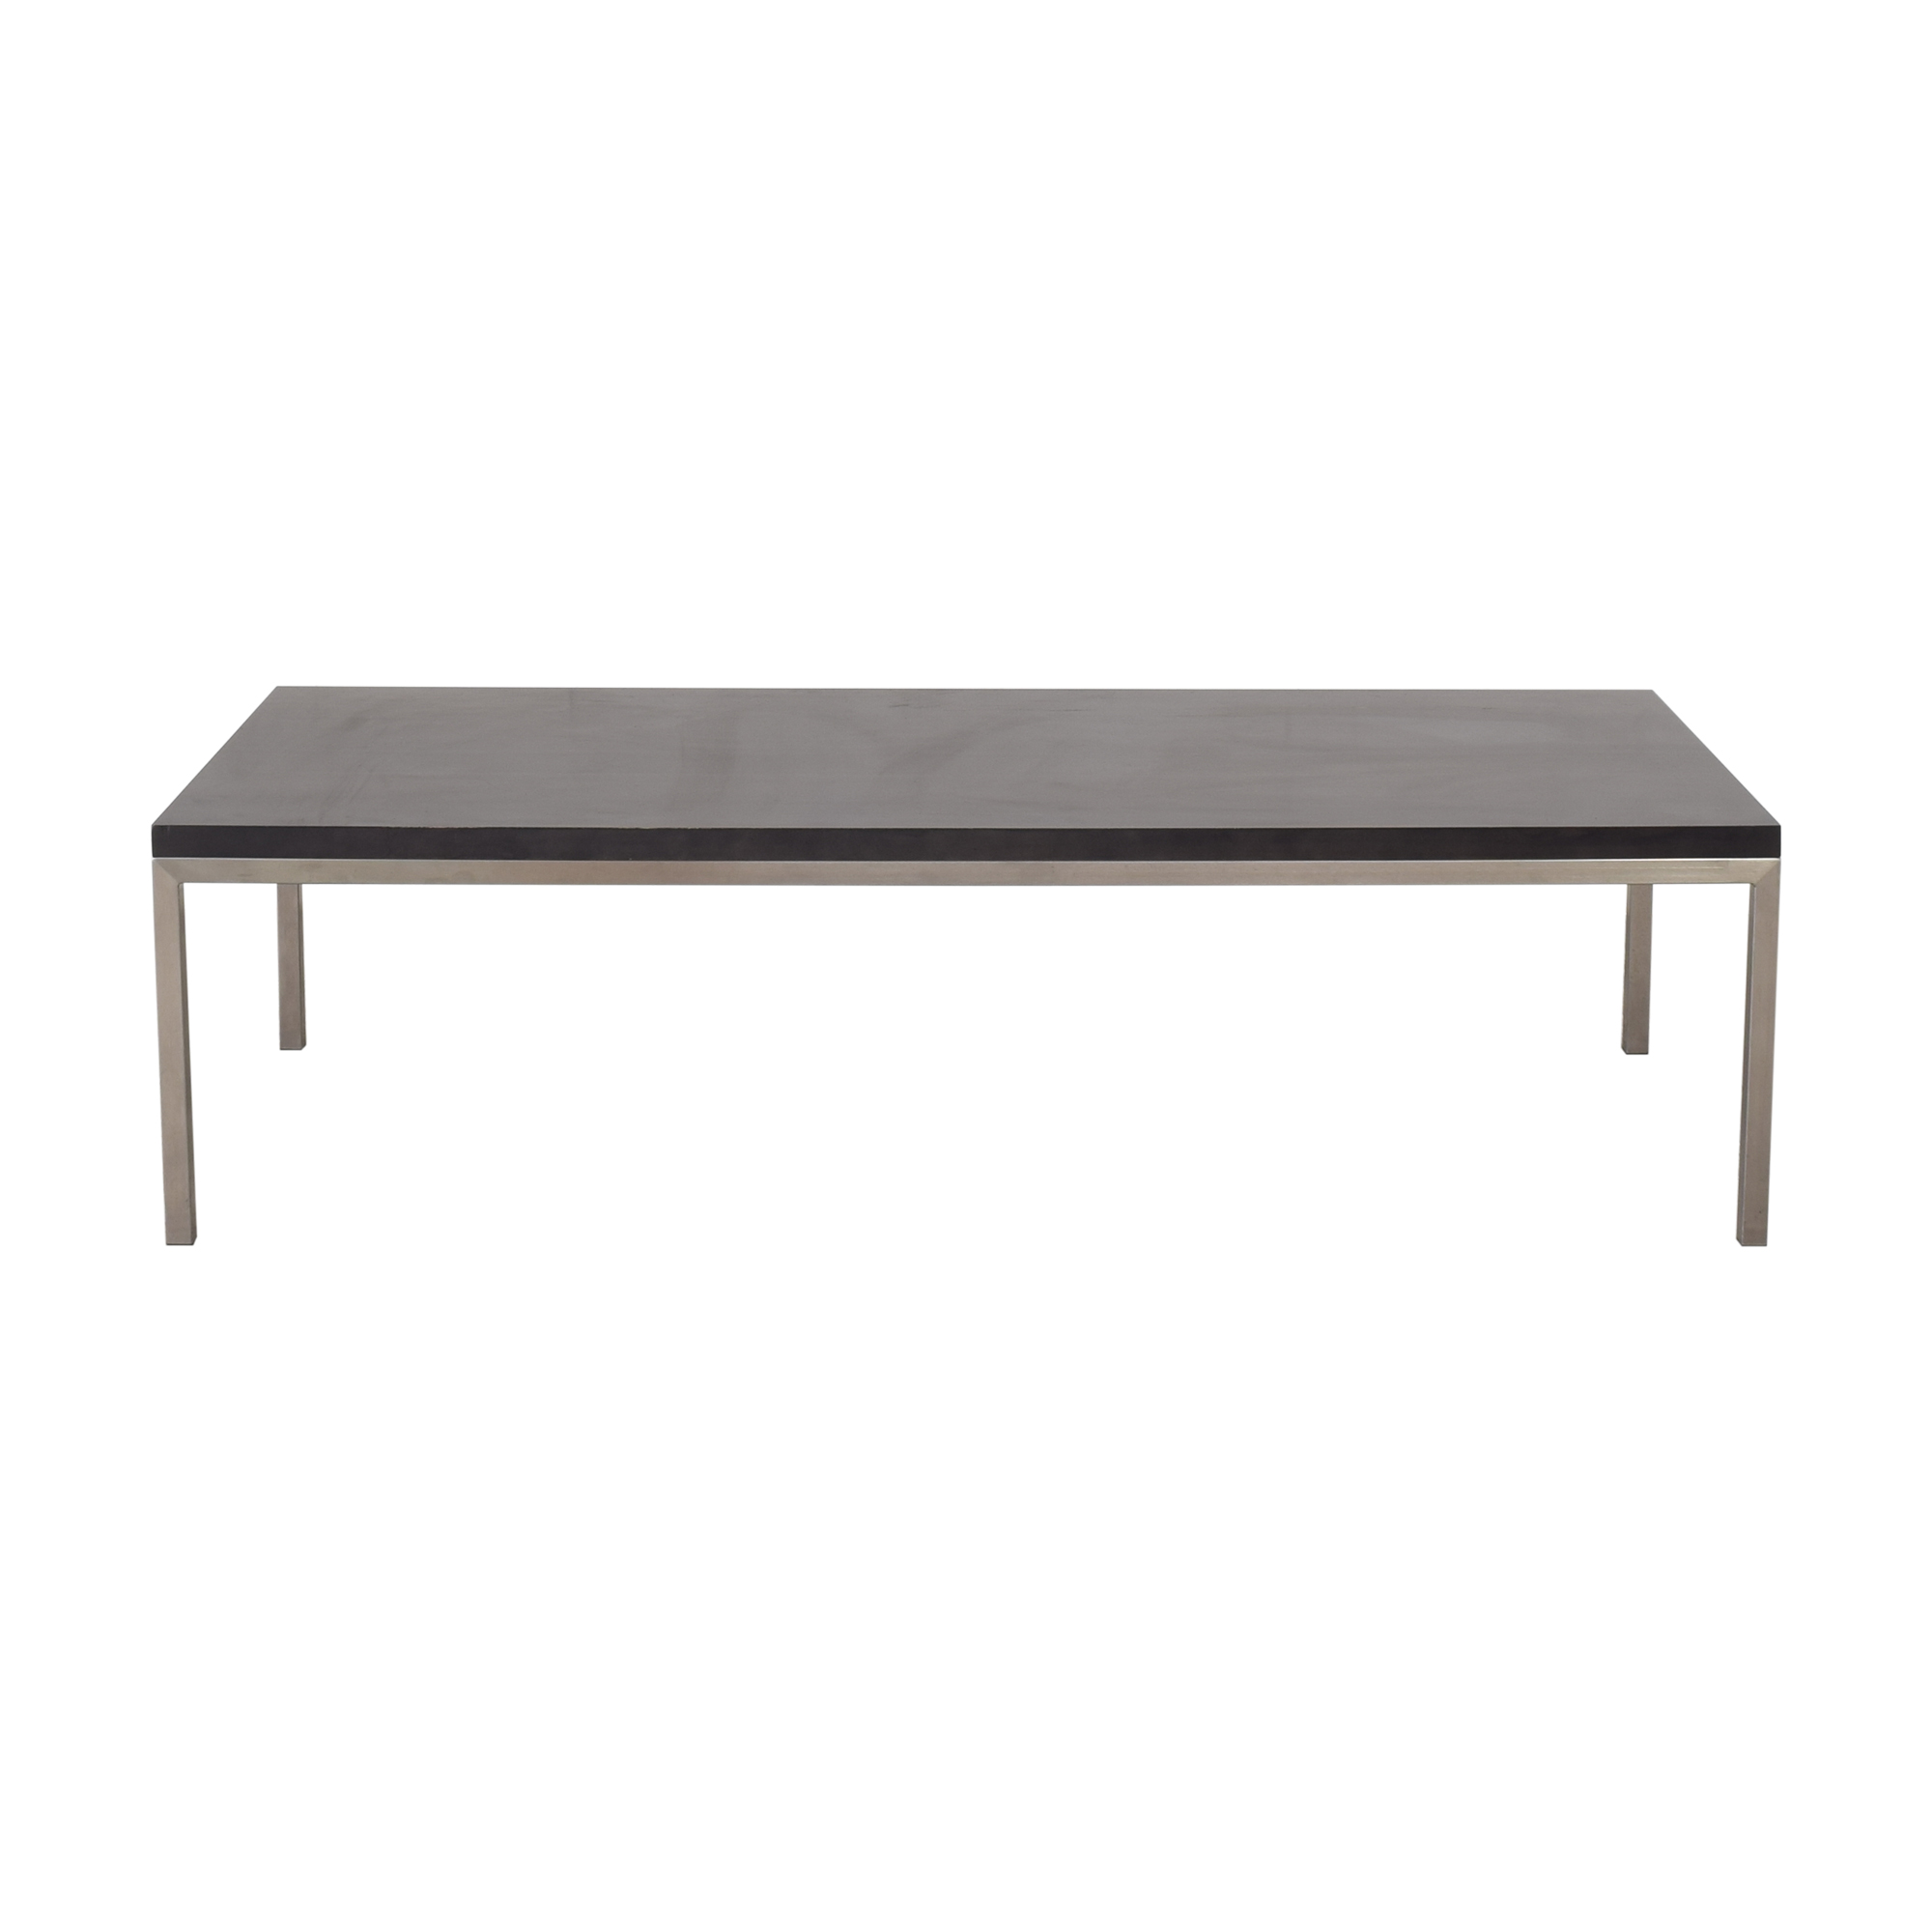 Room & Board Room & Board Pratt Coffee Table on sale